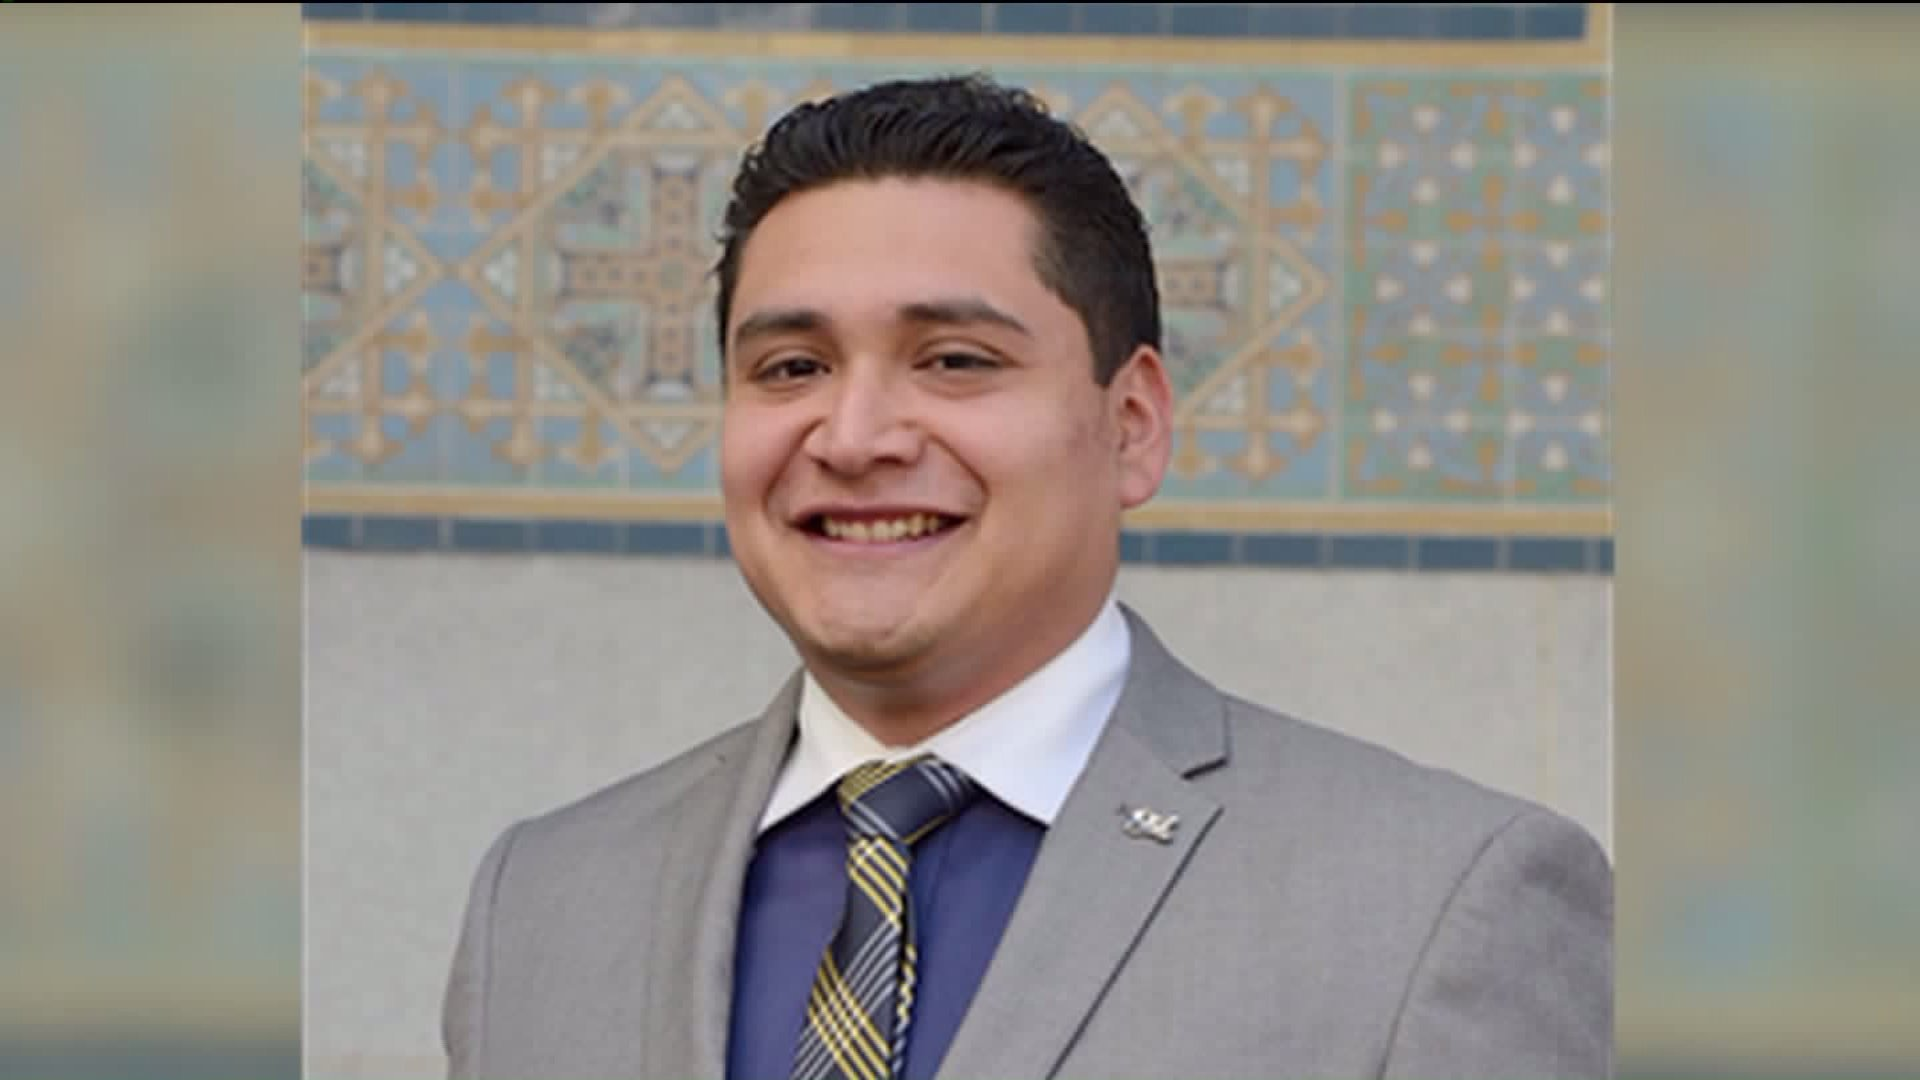 Fredy Torres, a field deputy for Los Angeles City Councilman Marqueece Harris-Dawson is seen in a picture on the city's website.